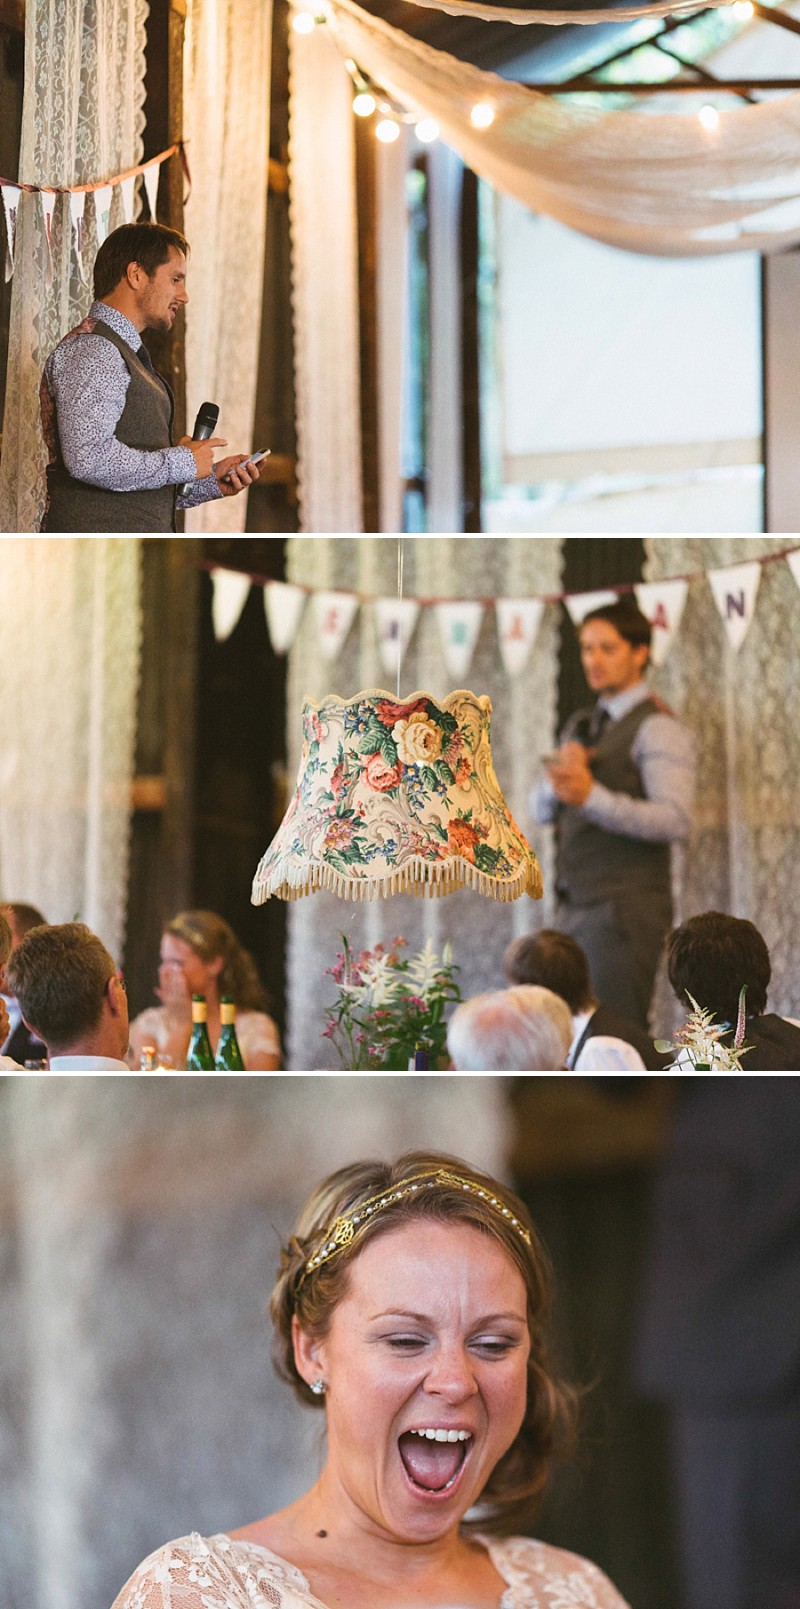 A rustic barn wedding at Townfield barn Derbyshire with a barn dance and a dessert table_0226